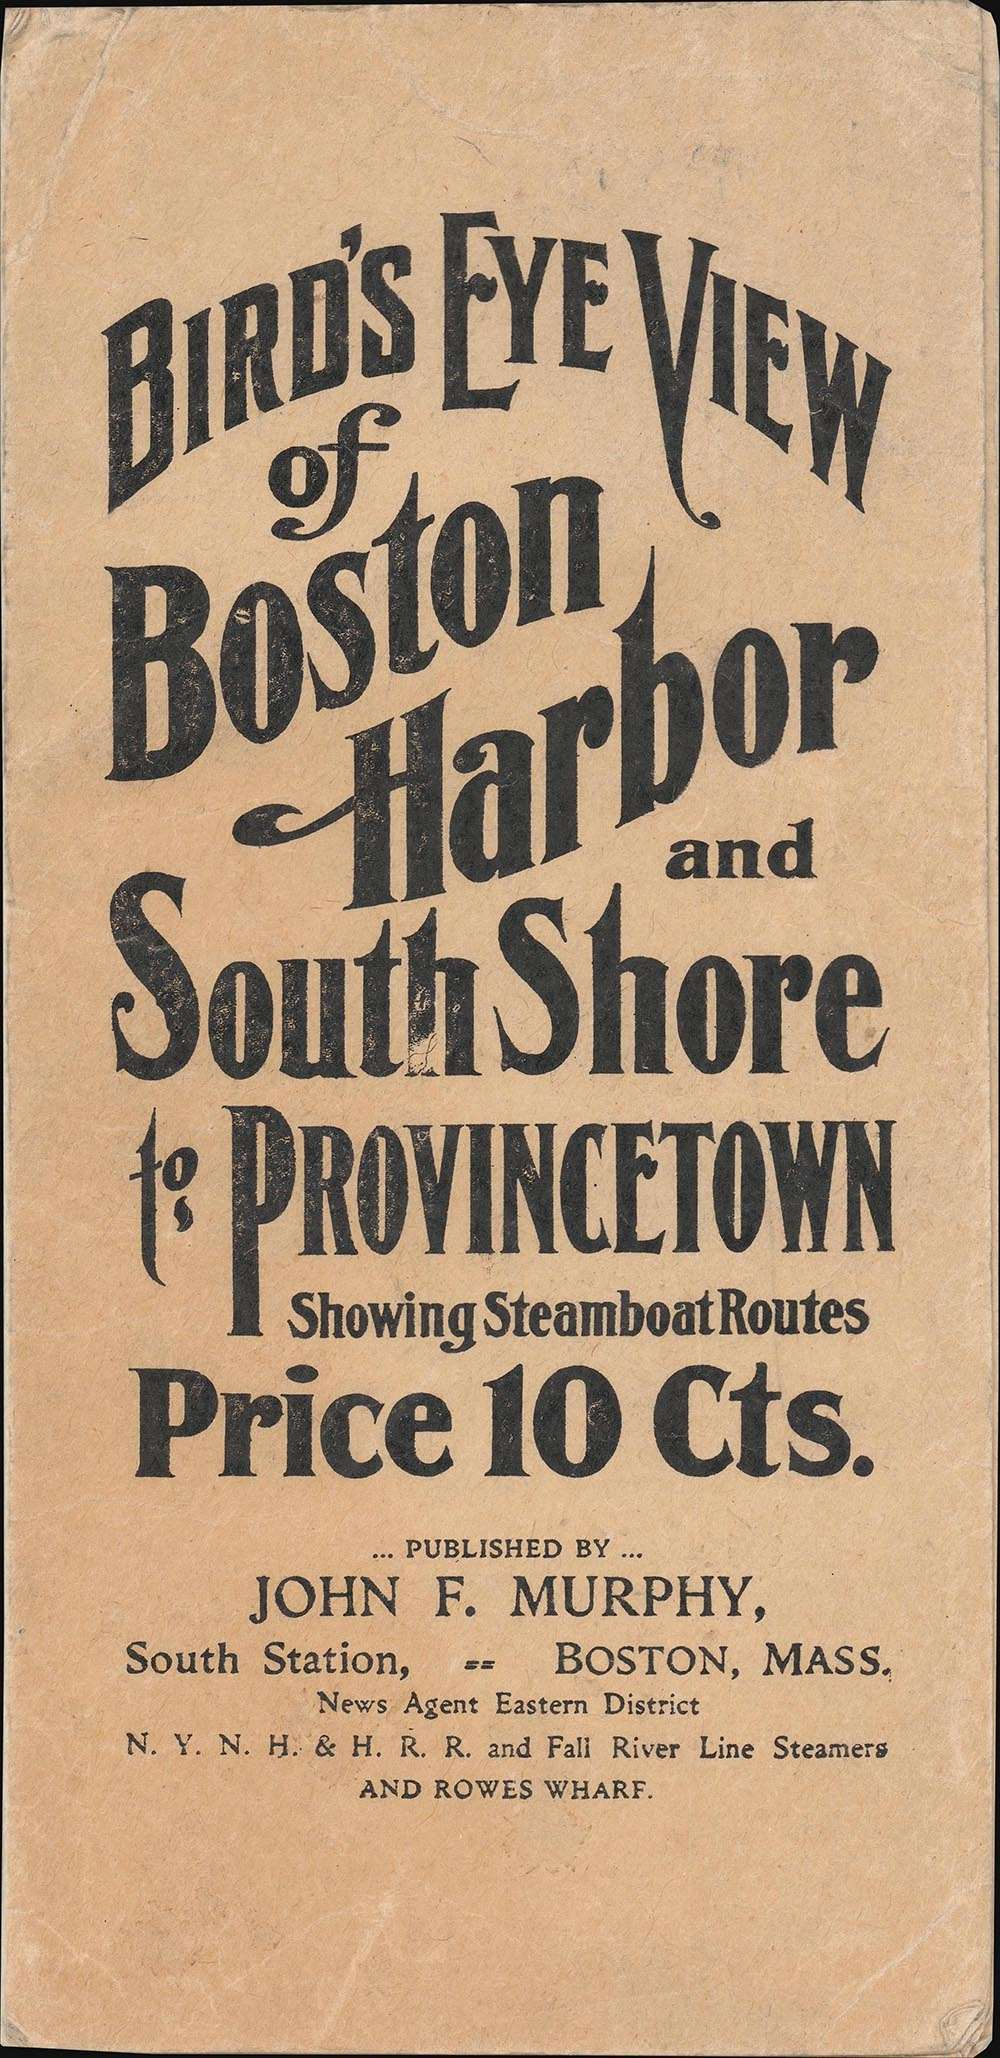 Bird's Eye View of Boston Harbor and South Shore to Provincetown Showing Steamboat Routes. - Alternate View 1